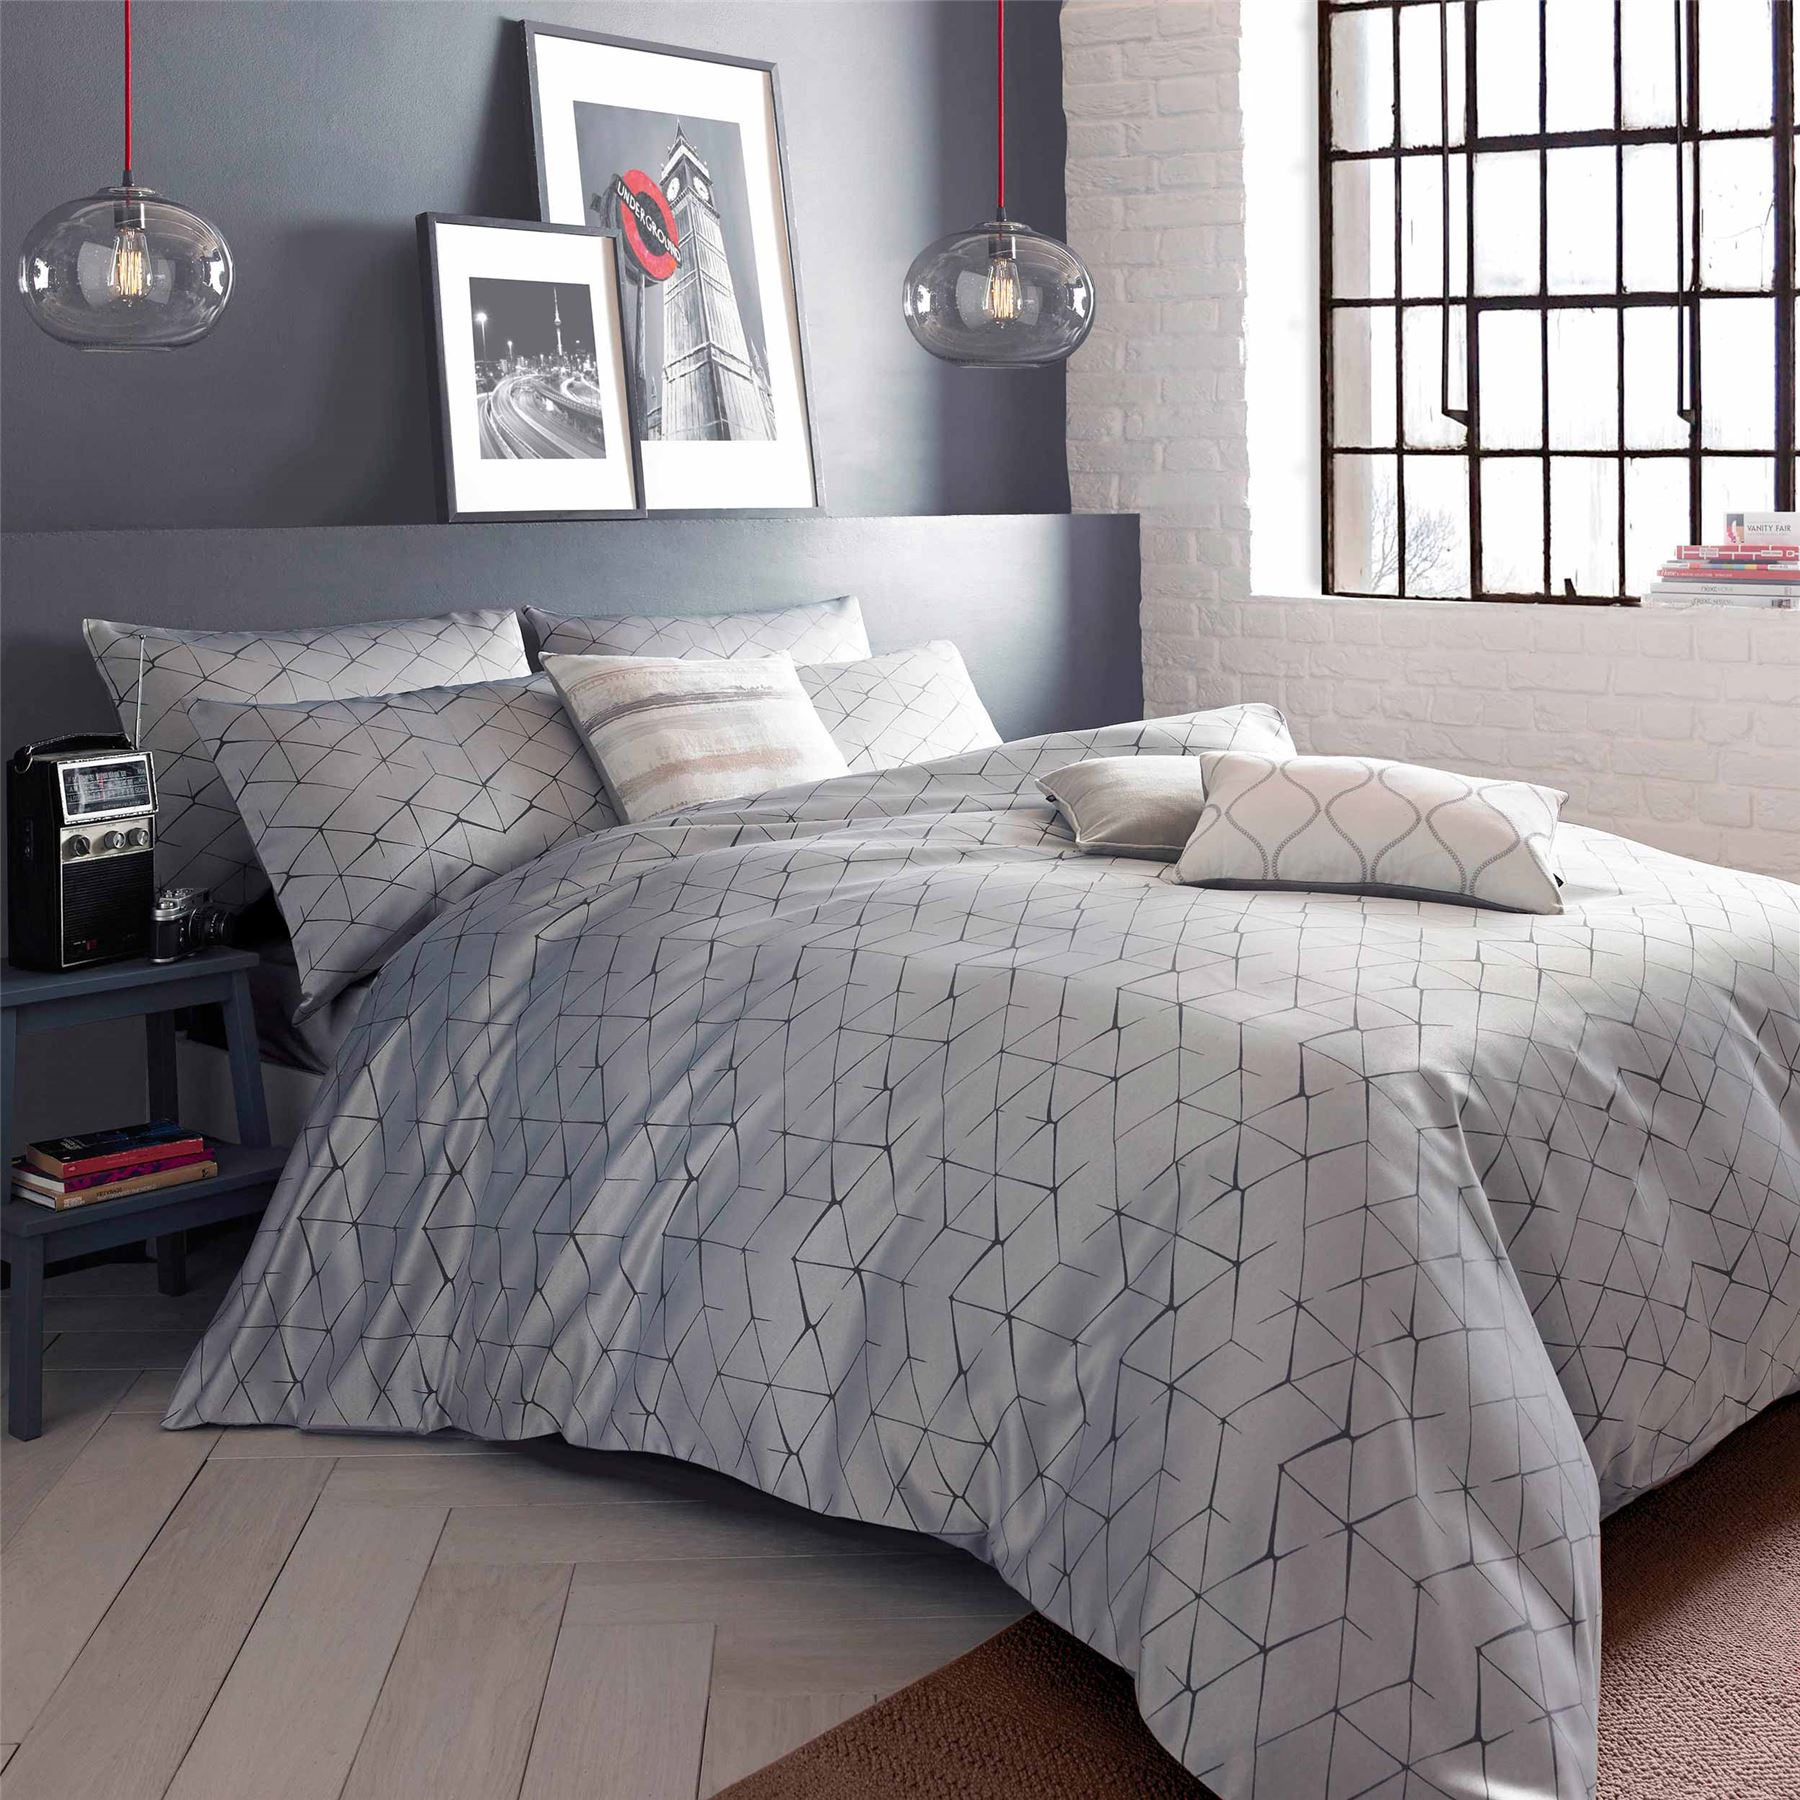 blueprint danuka grey and ivory geometric quilt cover set with  - blueprintdanukagreyandivorygeometricquiltcover